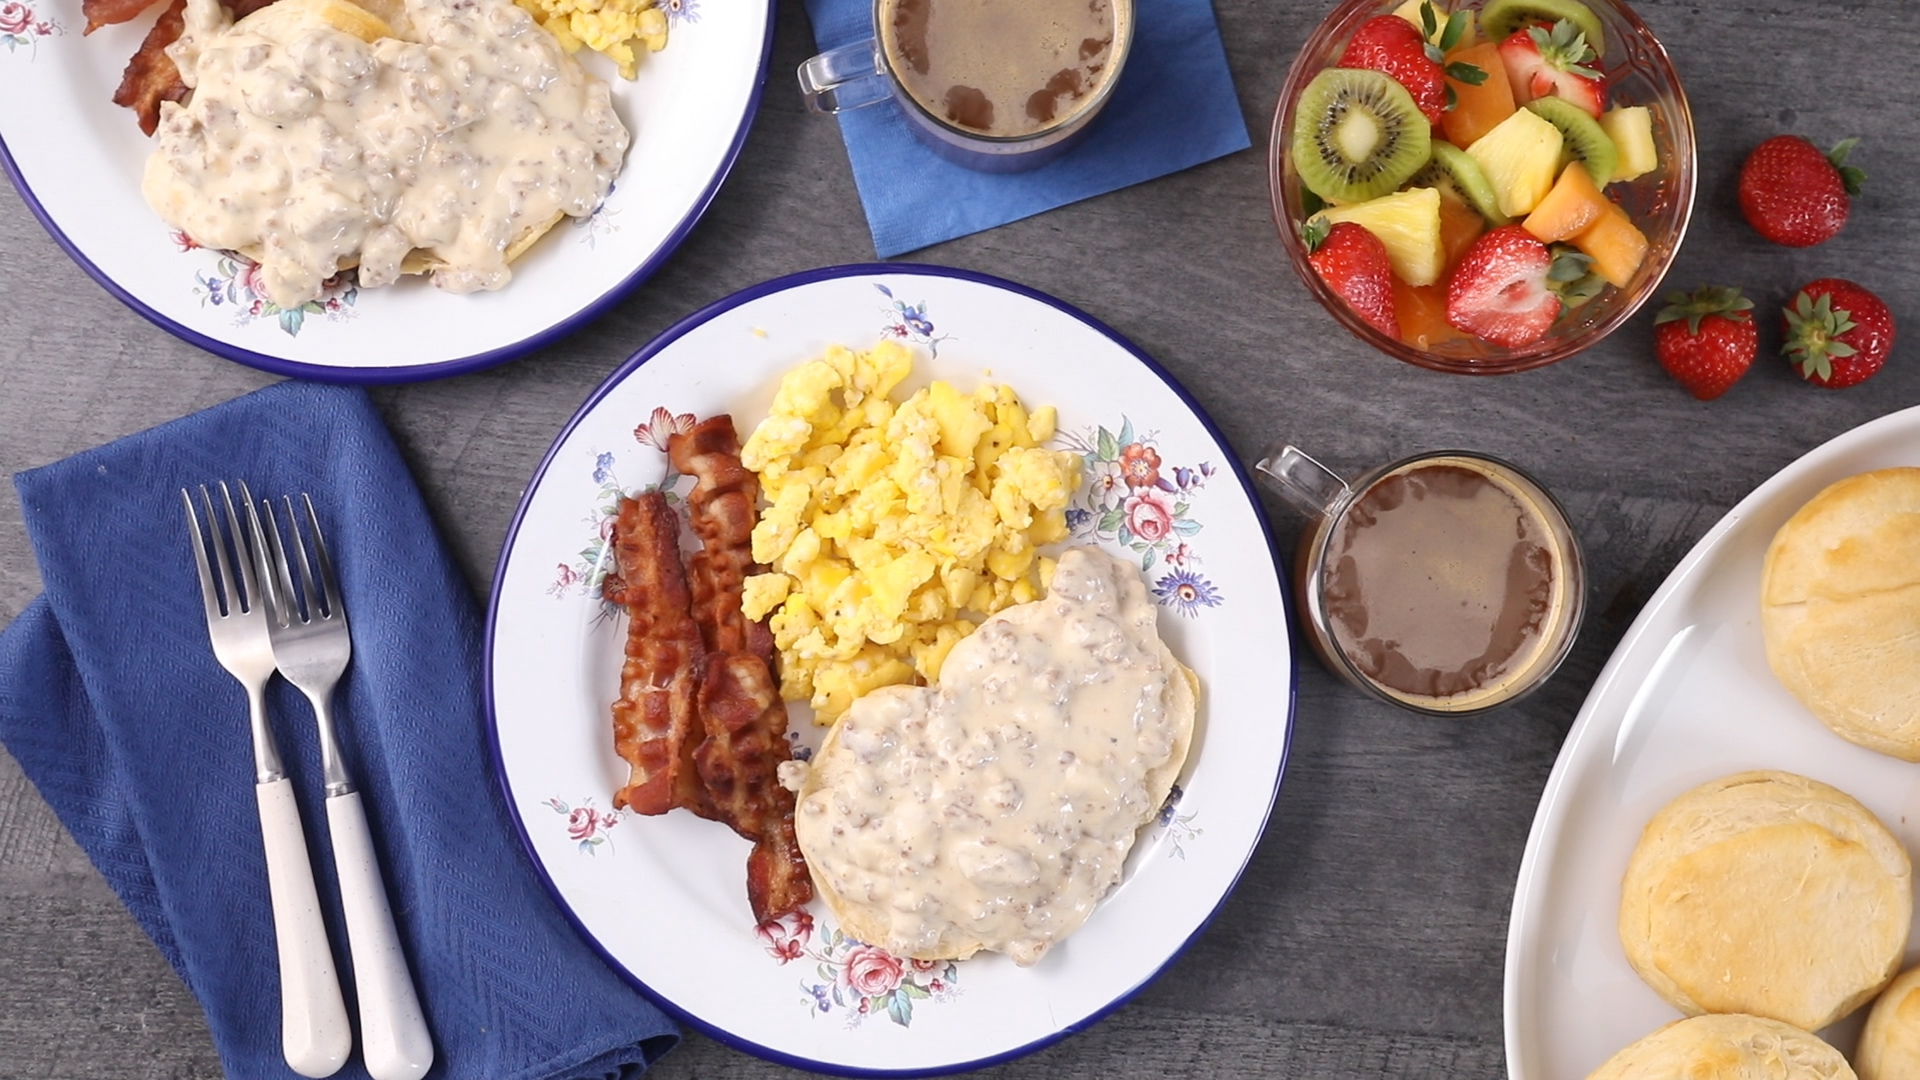 Sausage Biscuits and Gravy